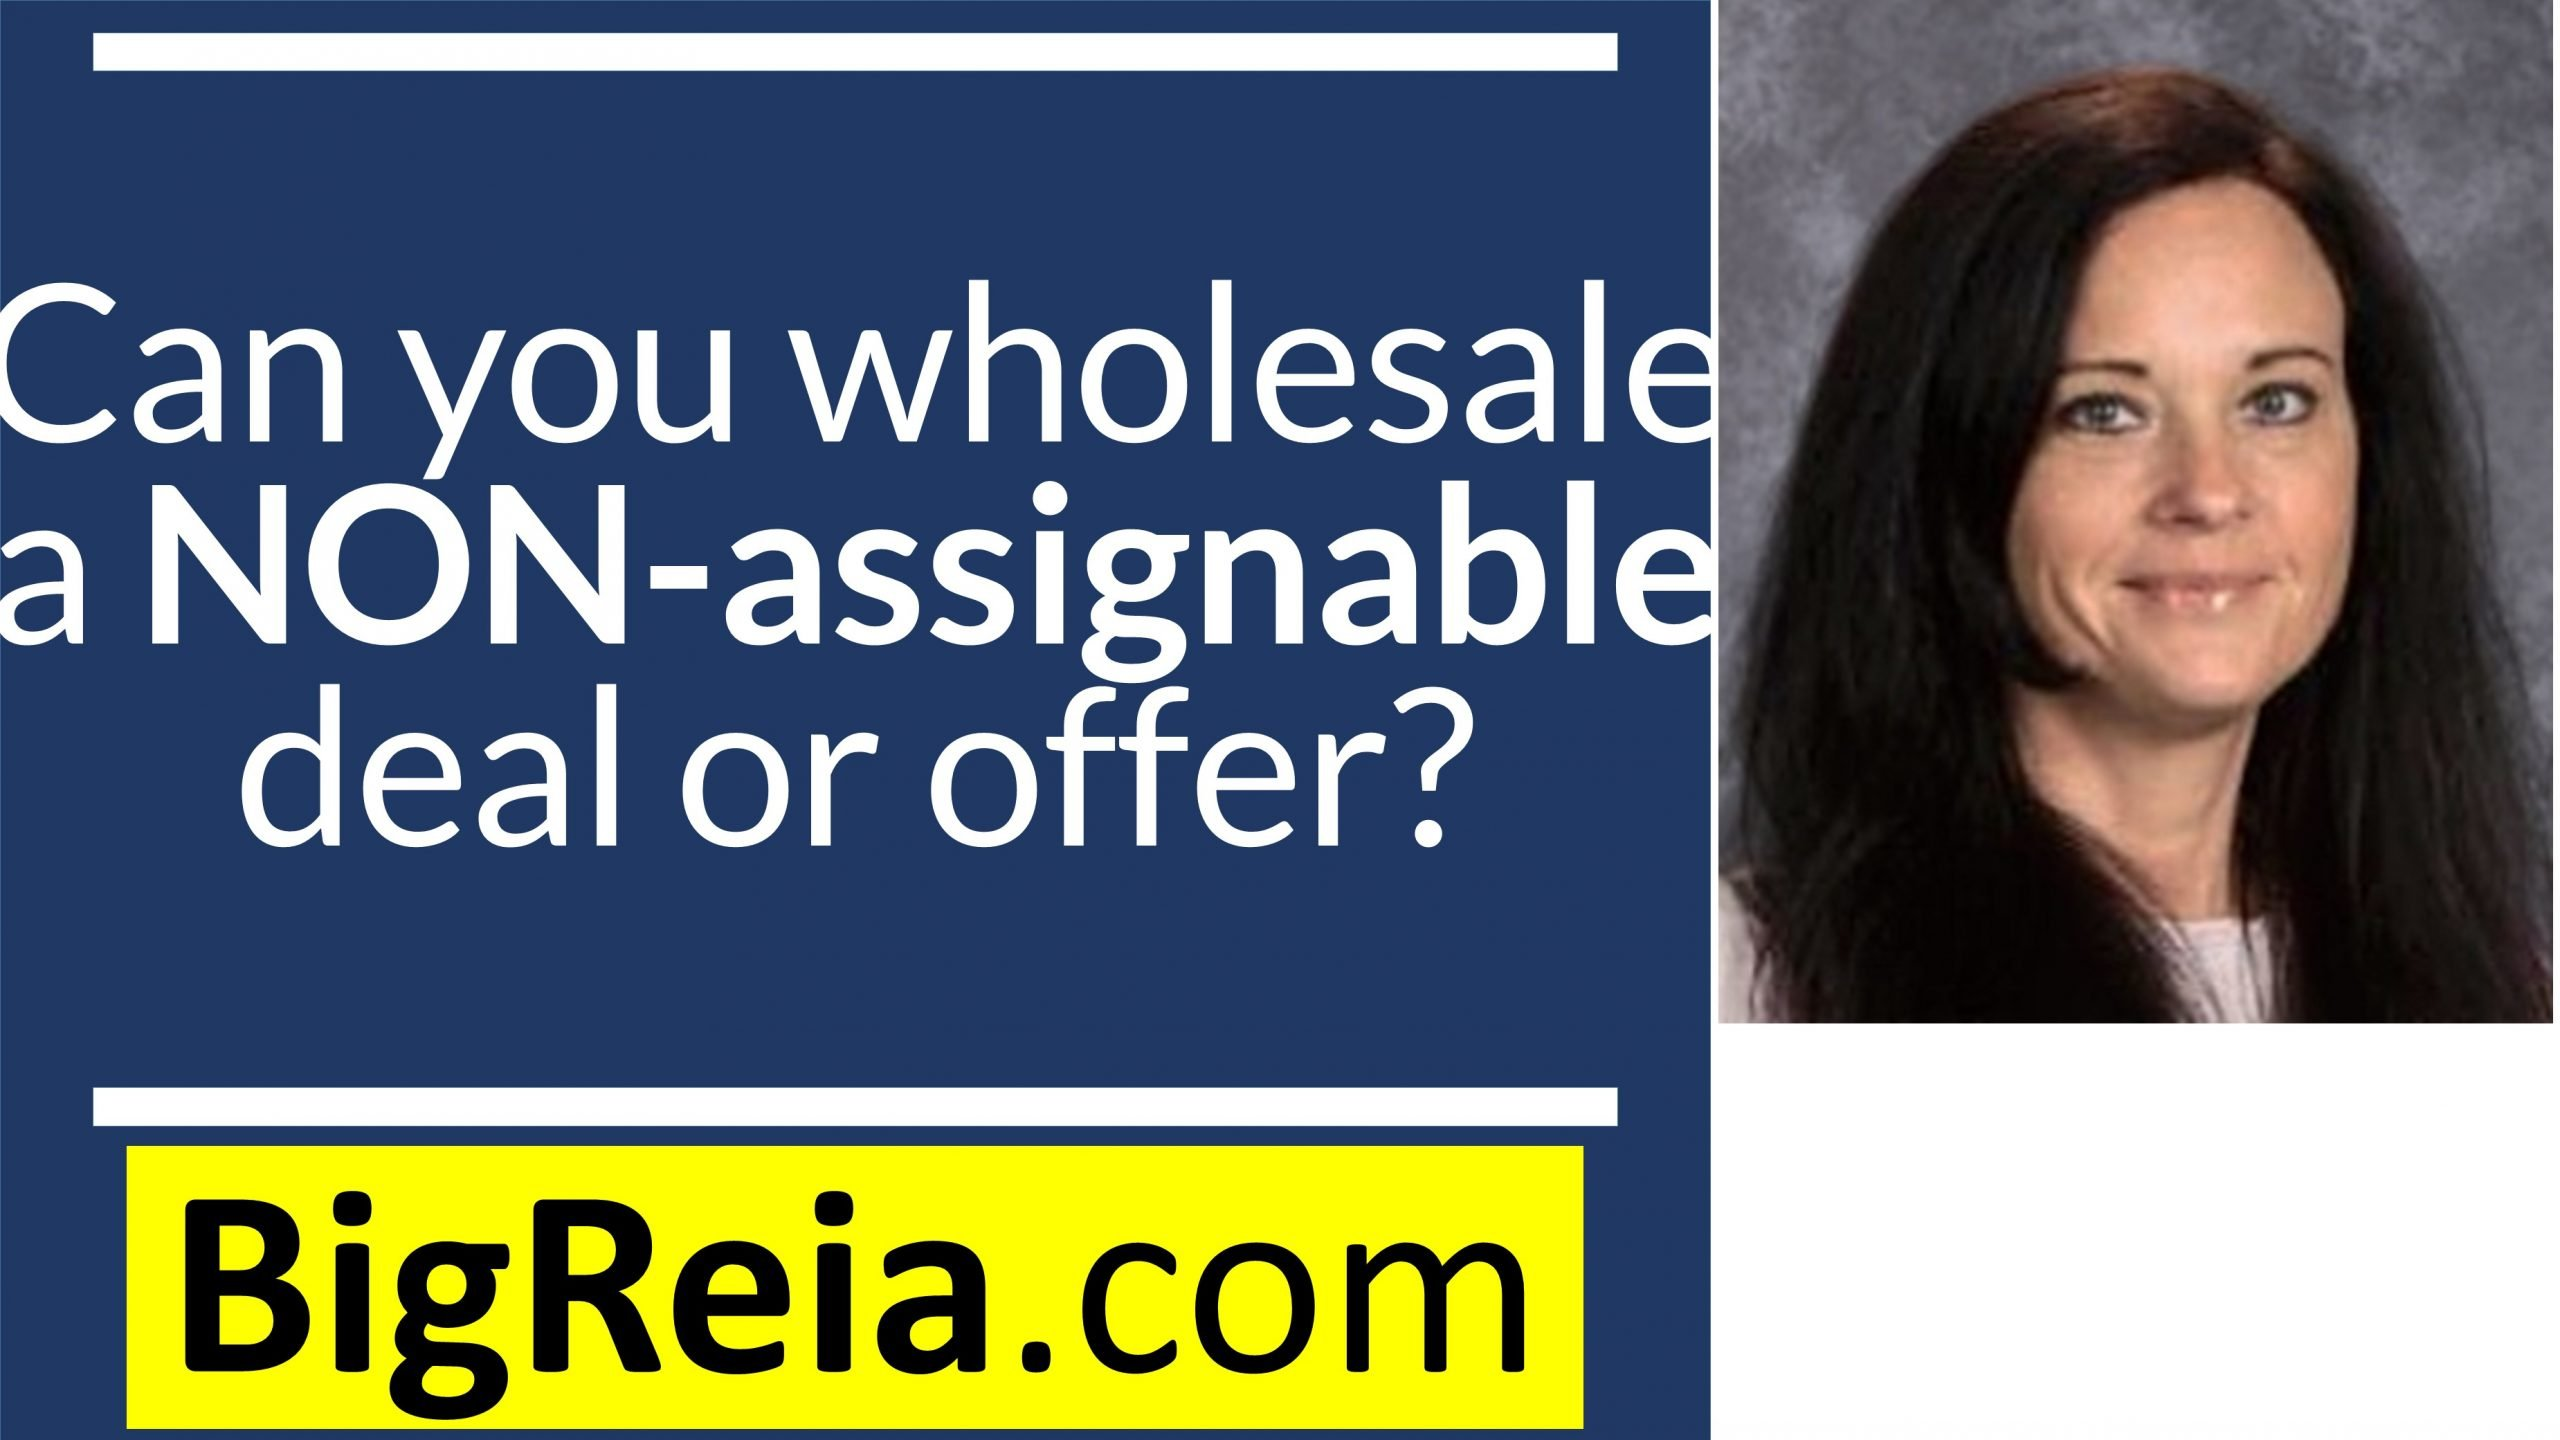 How can I assign deals that are NON-assignable? Investors CAN do the impossible flips?